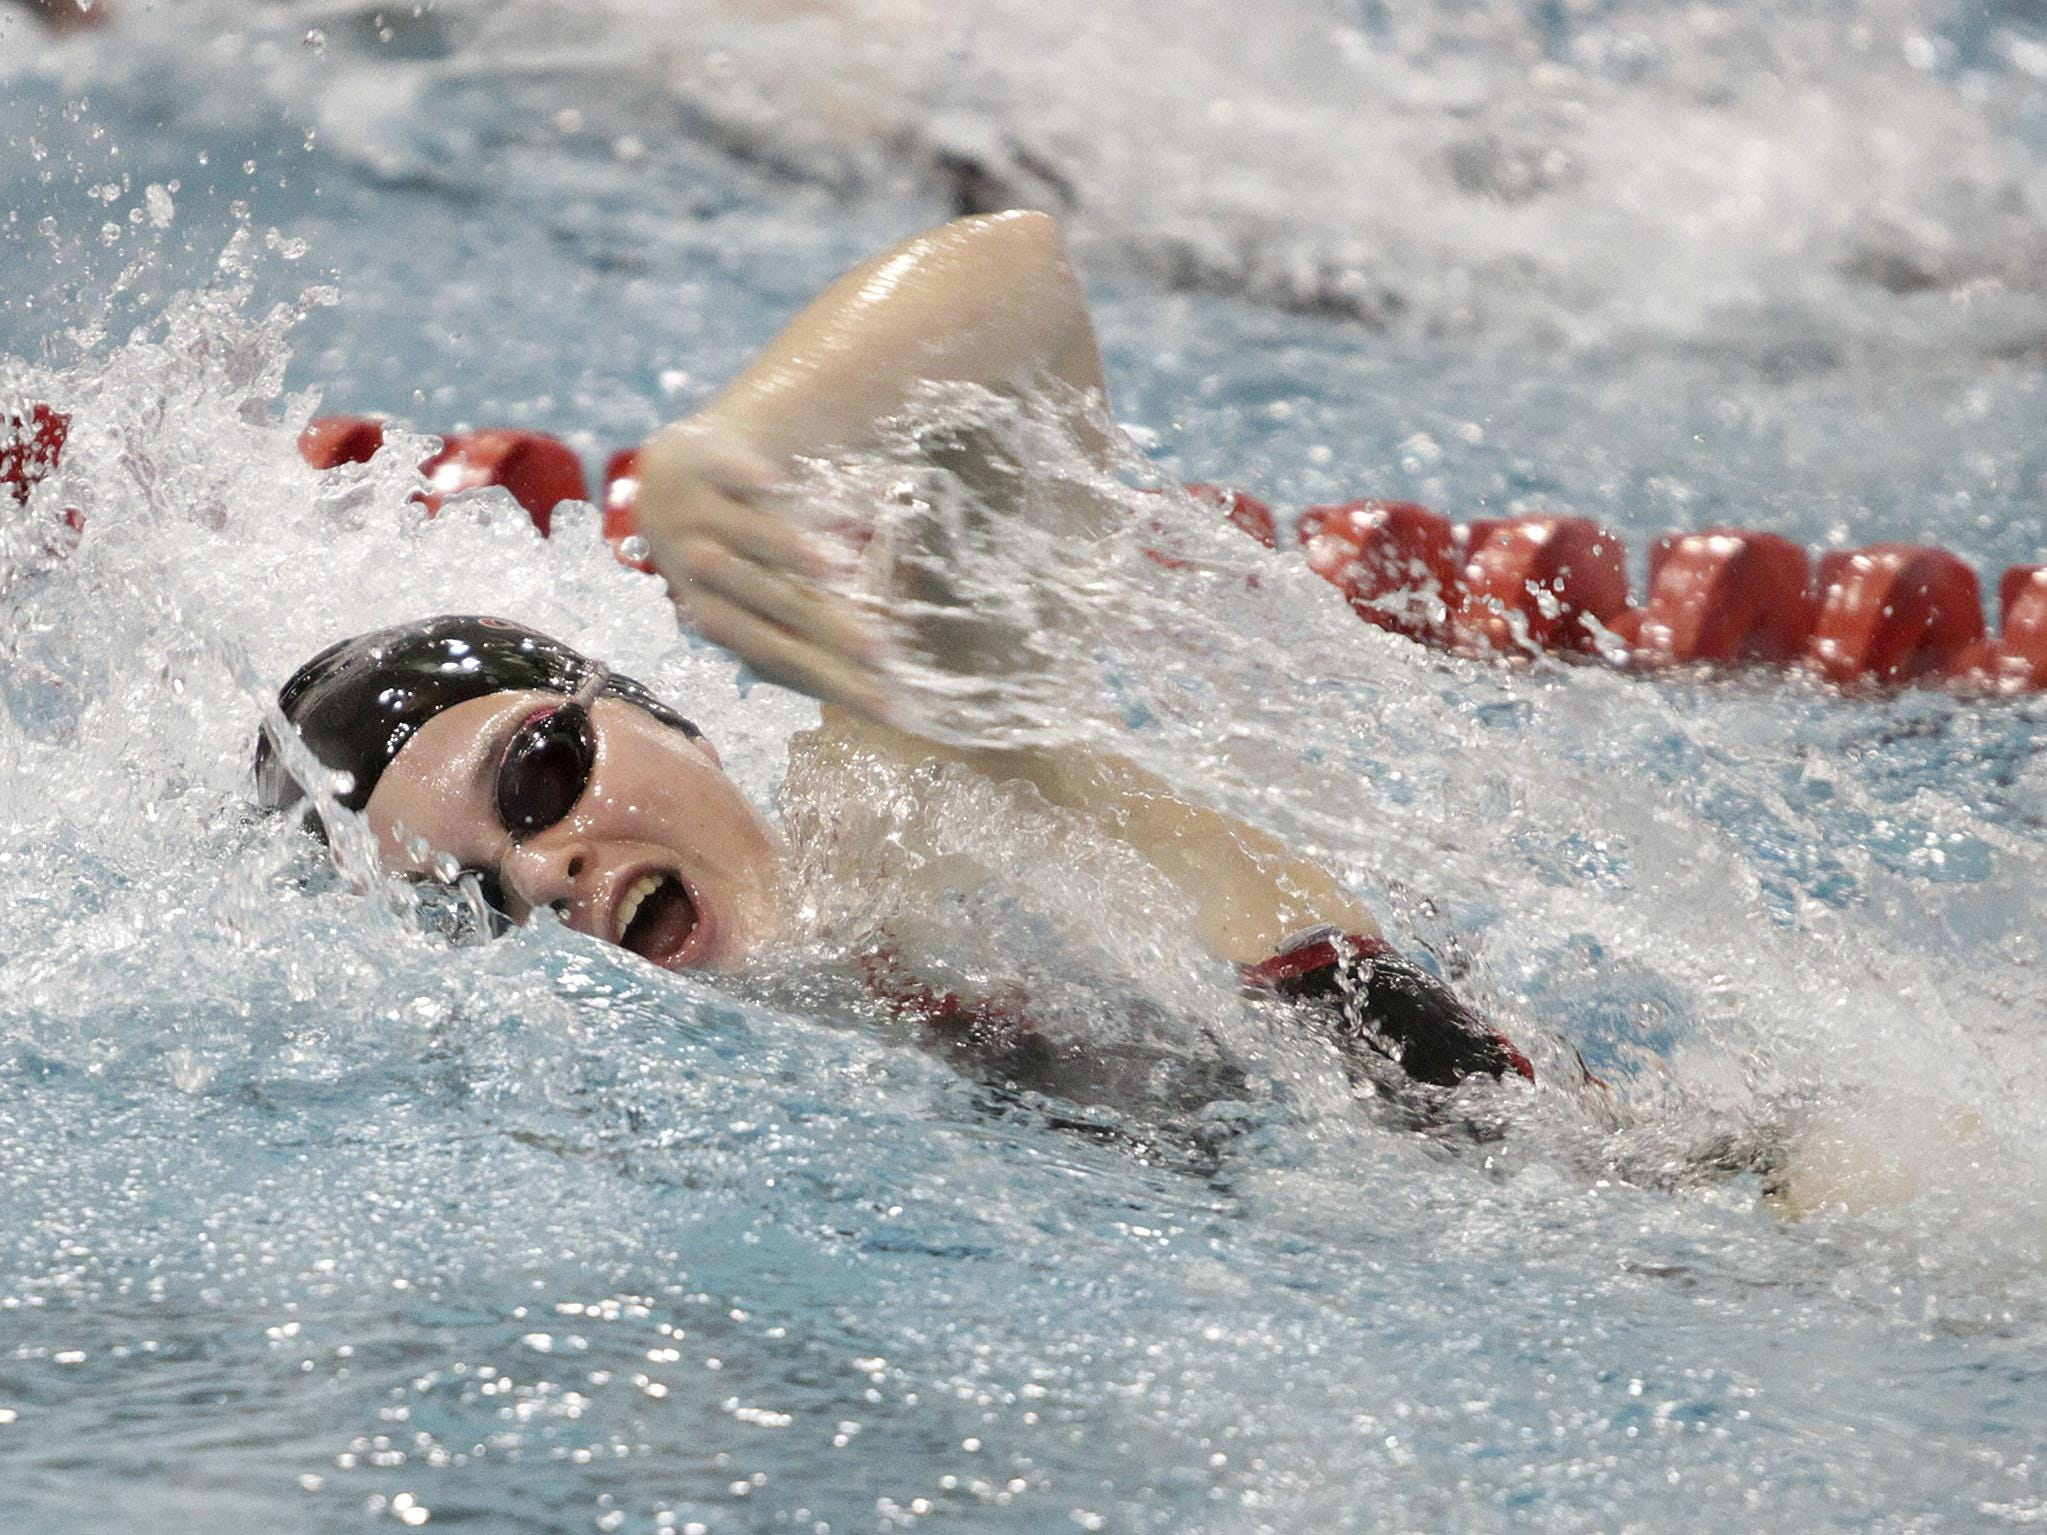 Kerry Tepe of Colerain swims a 26.10 in the 50-yard freestyle at the Southwest Ohio High School Swimming and Diving Classic last season.